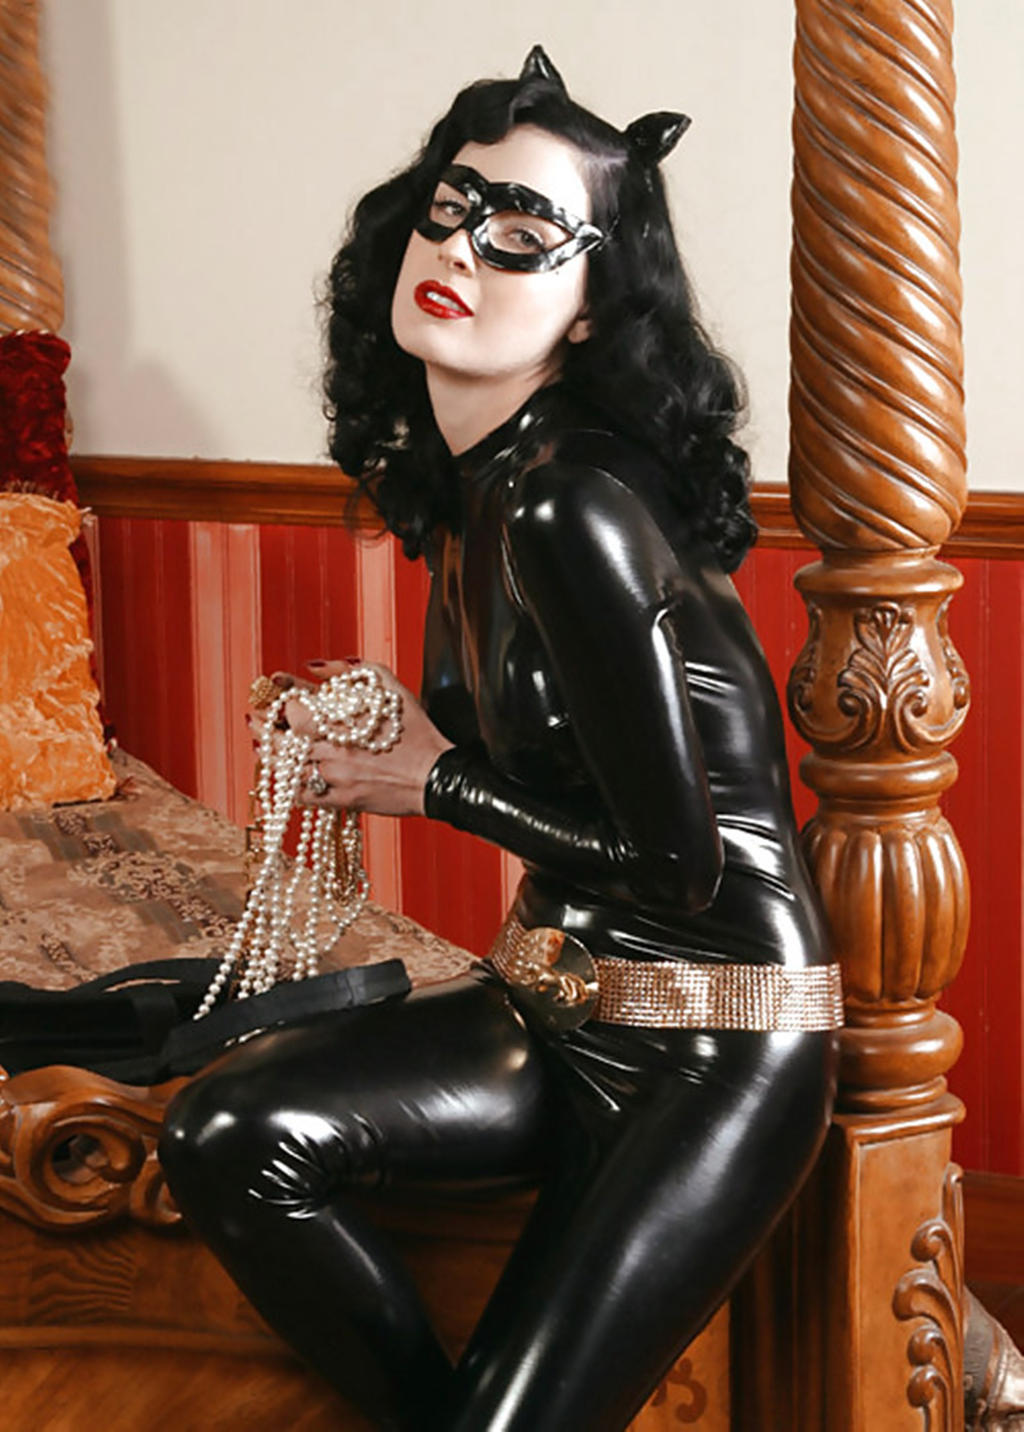 Catwoman Dita Von Teese By Joinpoint On Deviantart